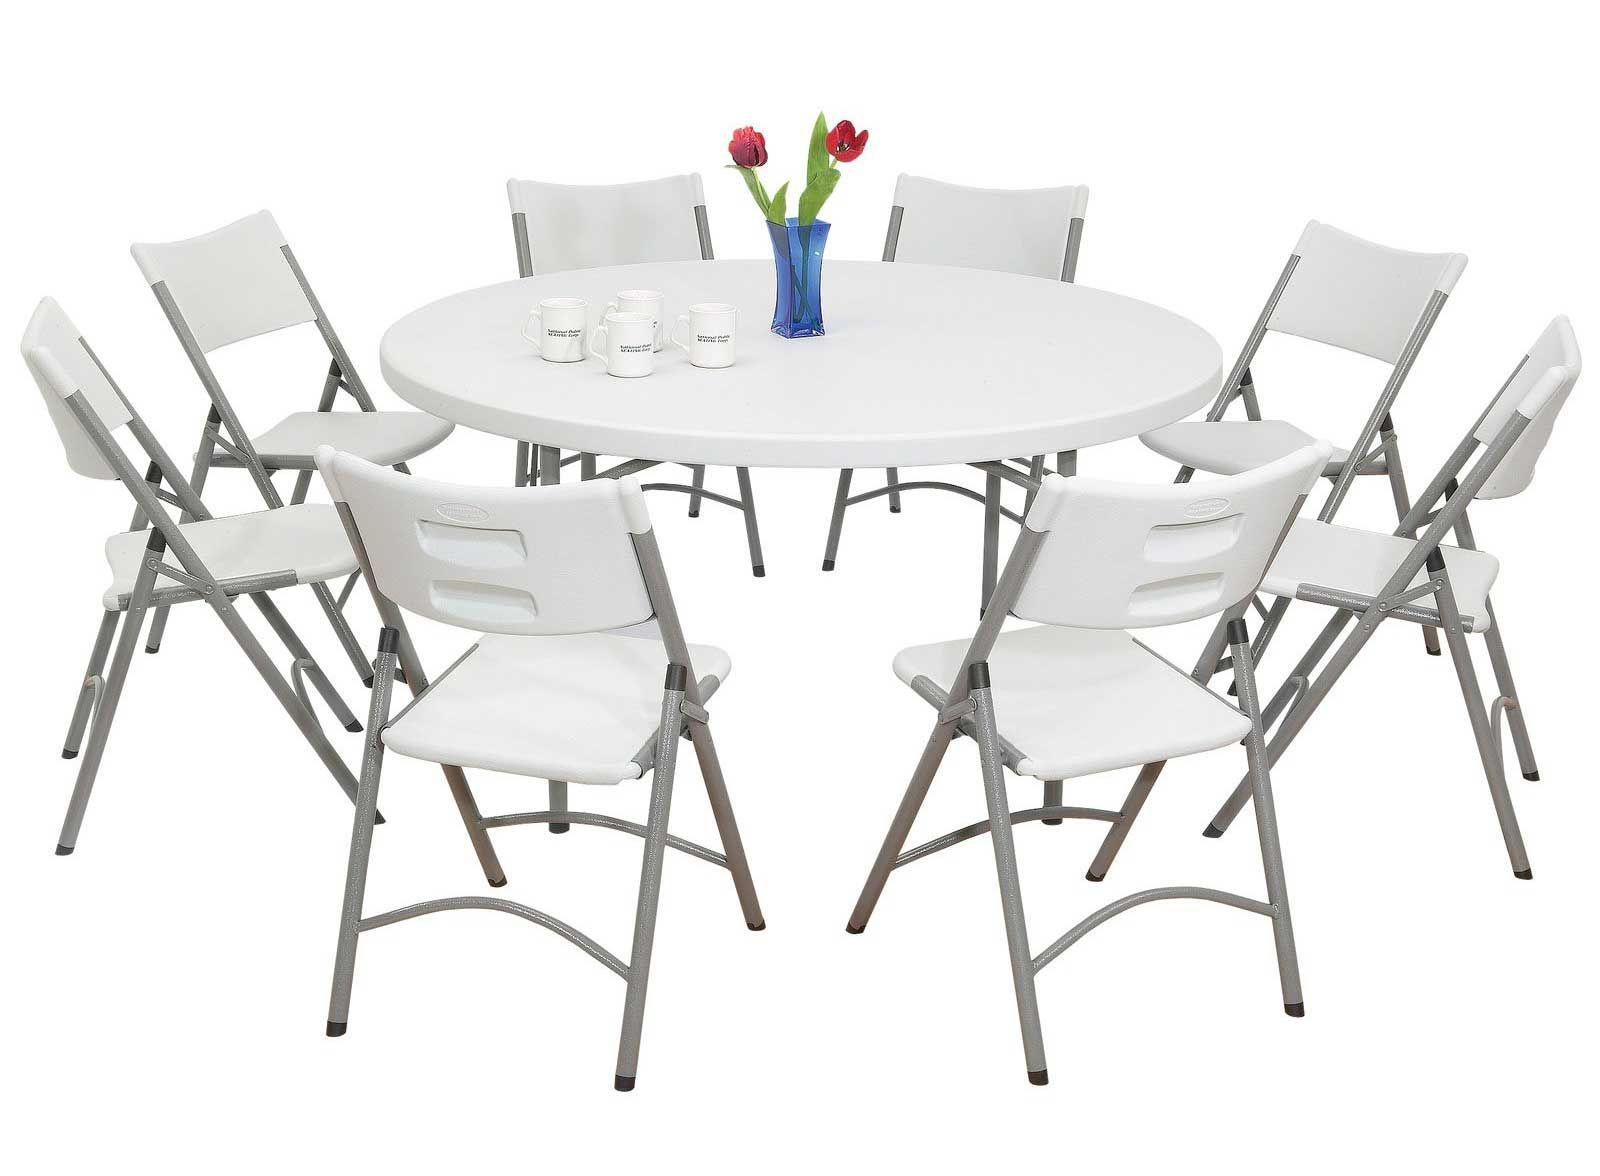 Benefits of Folding Furniture | Pinterest | Round folding table ...